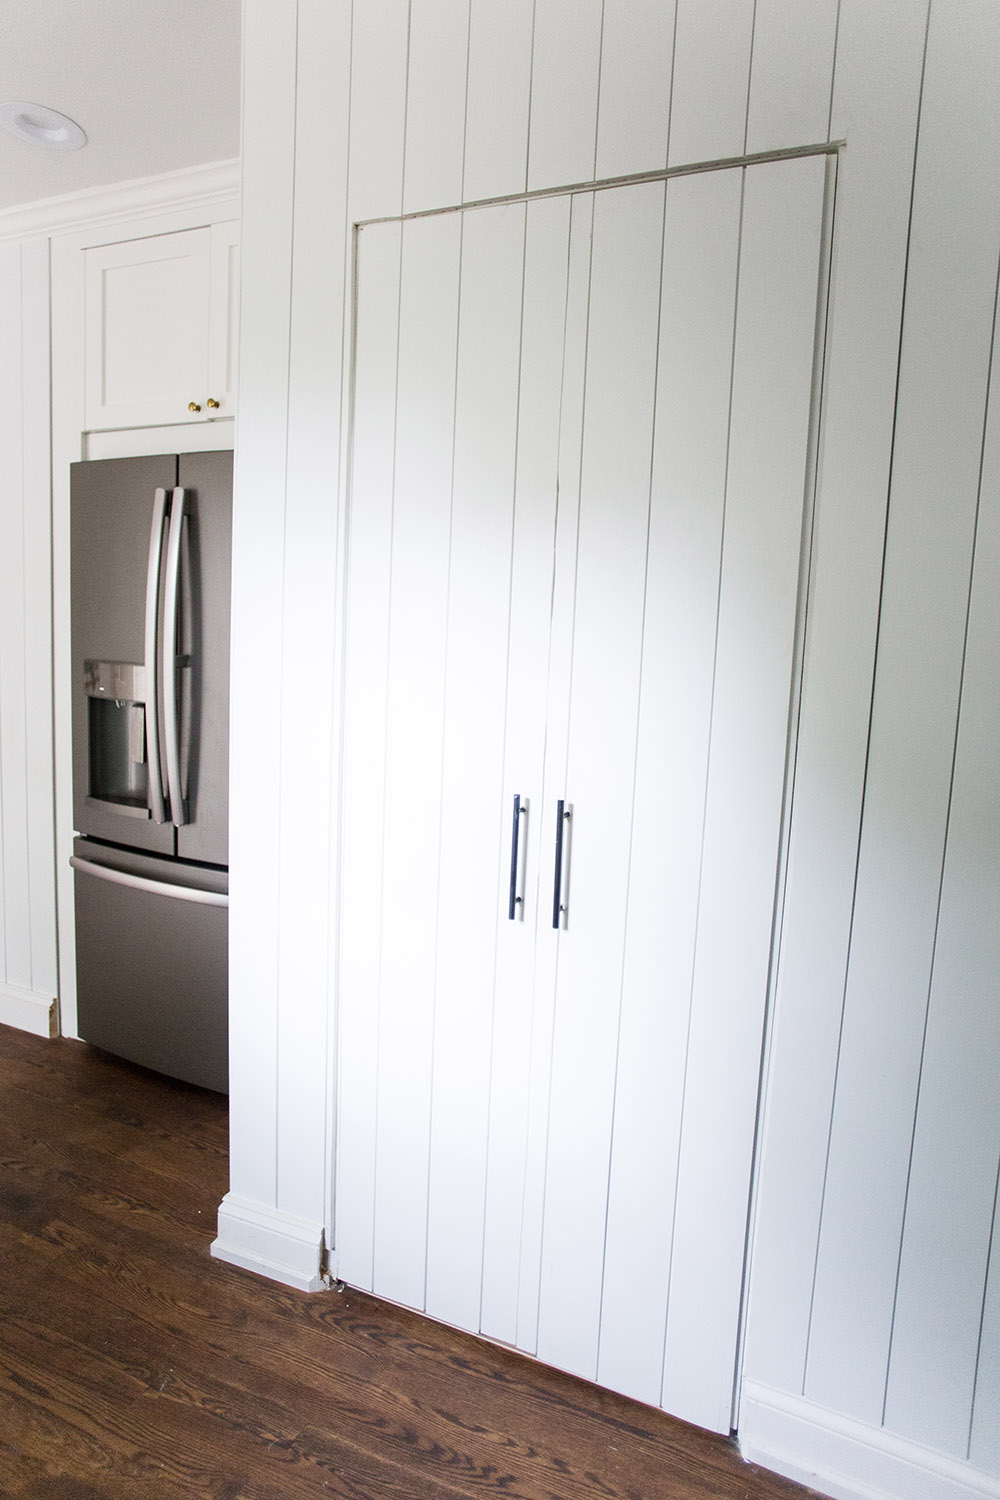 A white plank wall with double doors and silver handles.